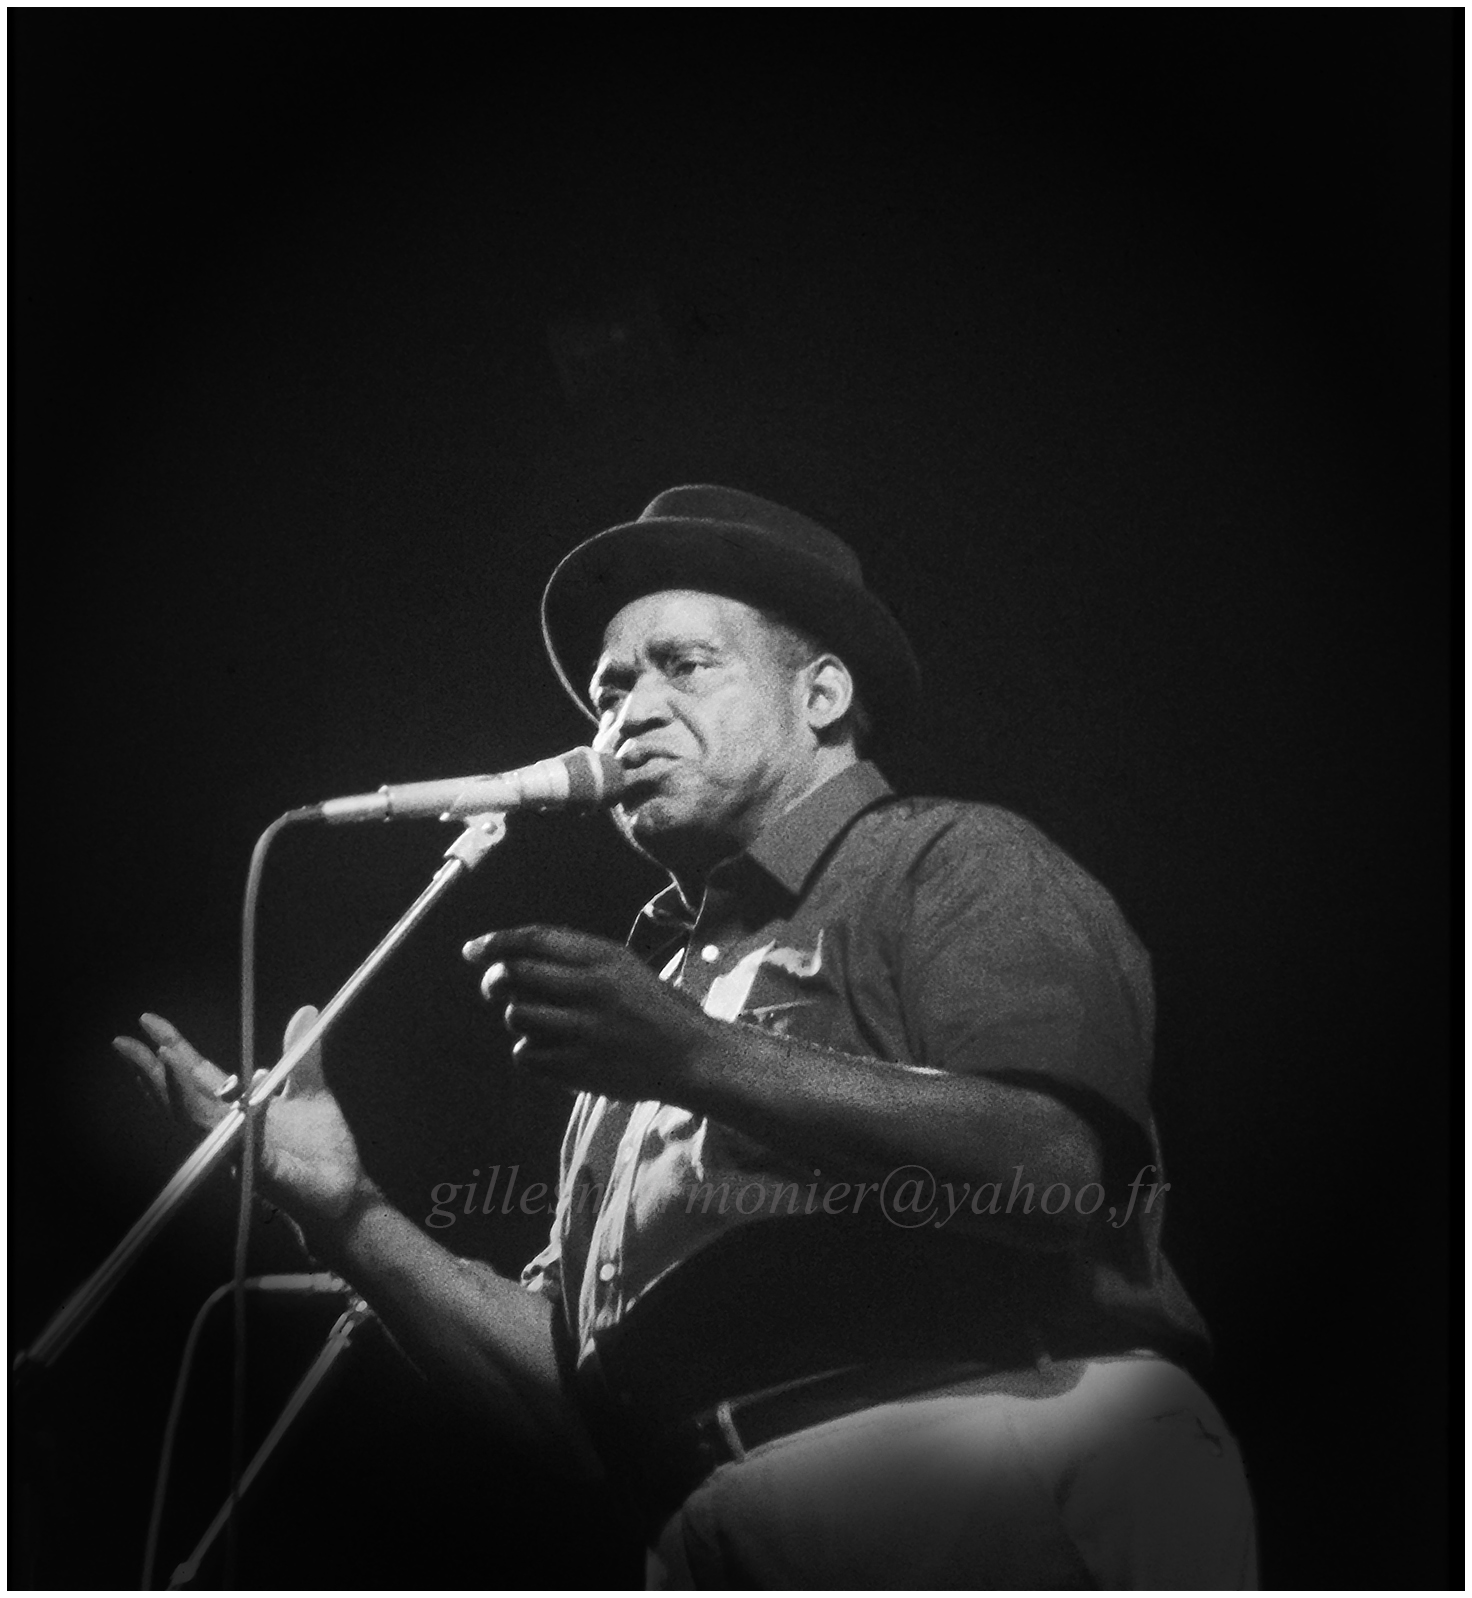 Willie dixon Salon de provence 1983